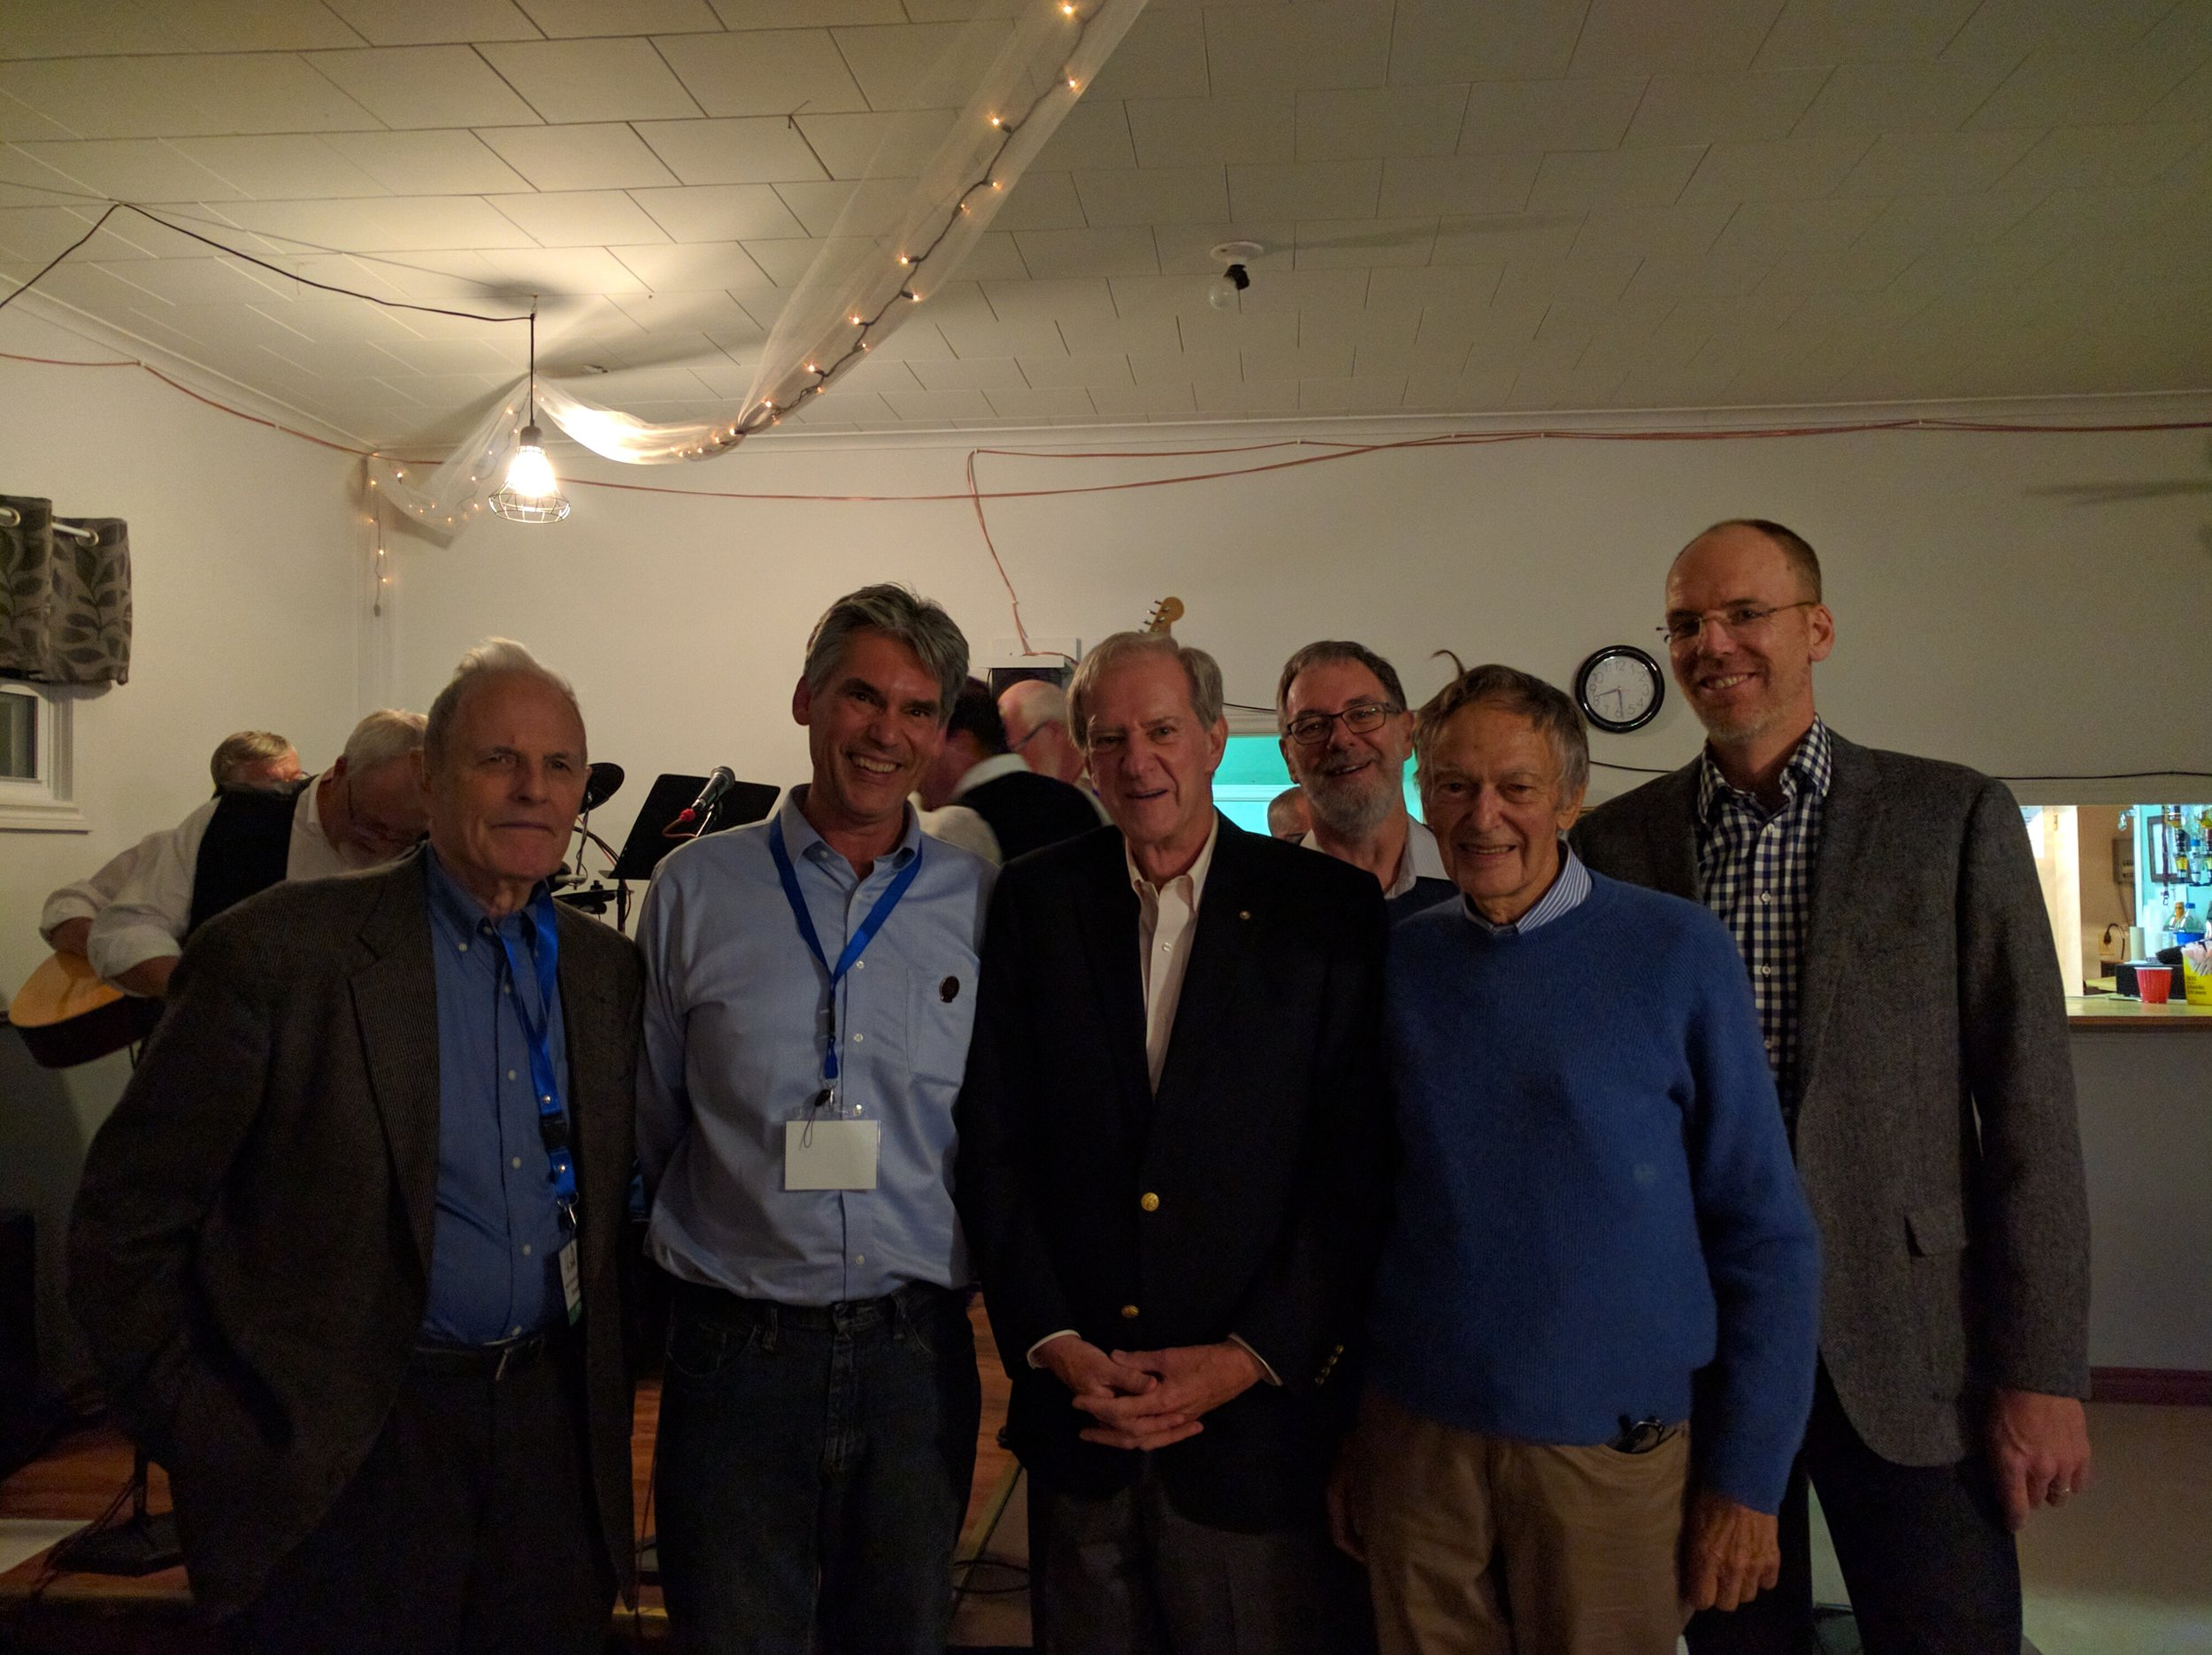 Conference speakers (L-R): Bernard Finn, Cyrus Field IV, Ted Rowe, Charles Stirling, Wallace Rendell, David Anderson, Shane O'Dea (not pictured).